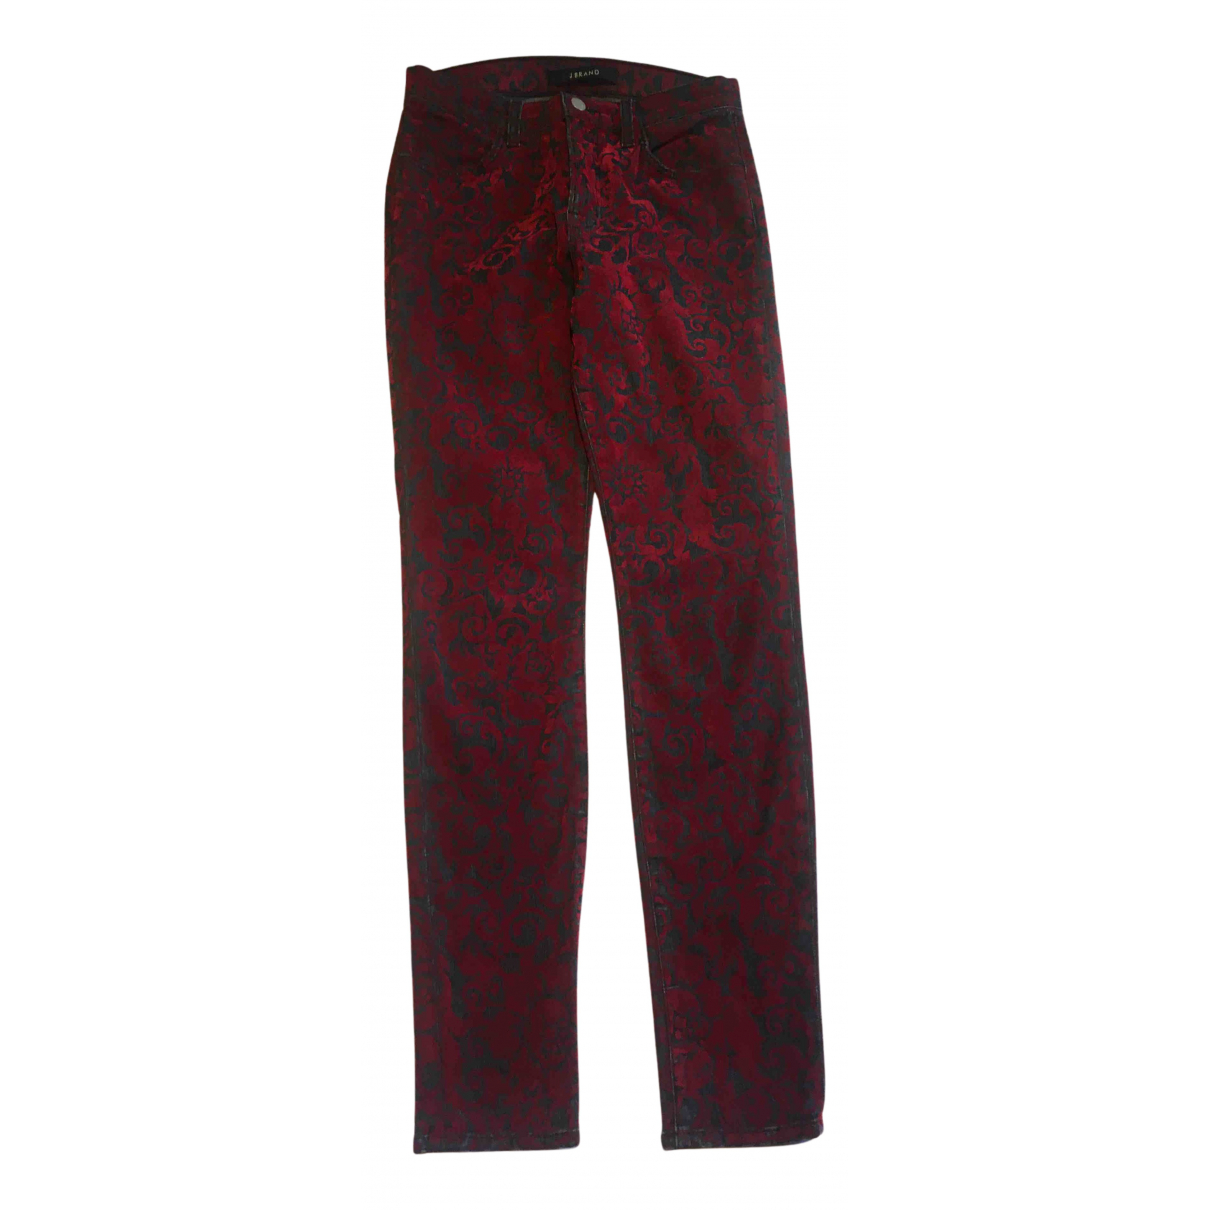 J Brand N Red Cotton Jeans for Women 27 US